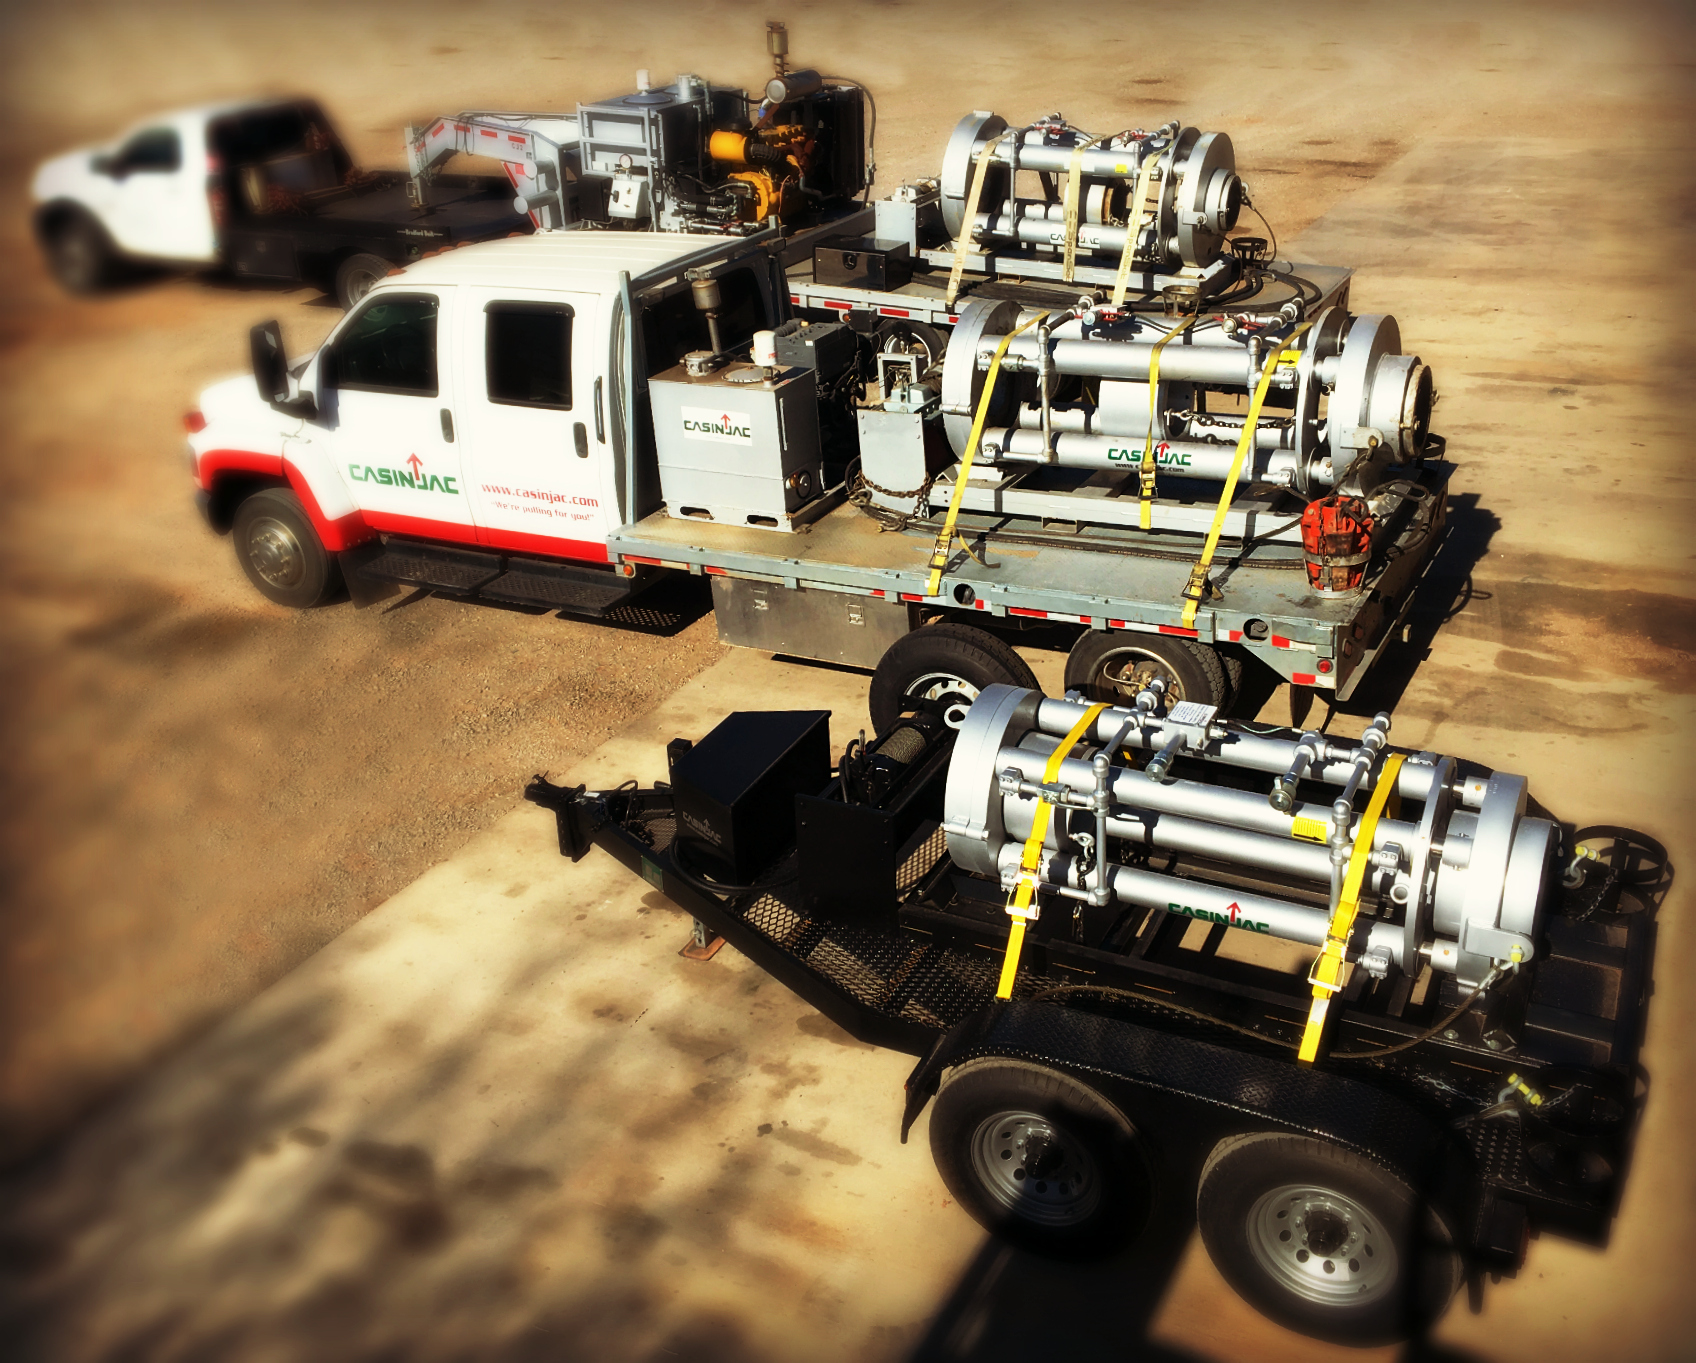 We have the right model casing jack paired with the right hydraulic power unit and delivery system to get our customers out of a bind. Pictured here is only part of Casinjac's field service capability.